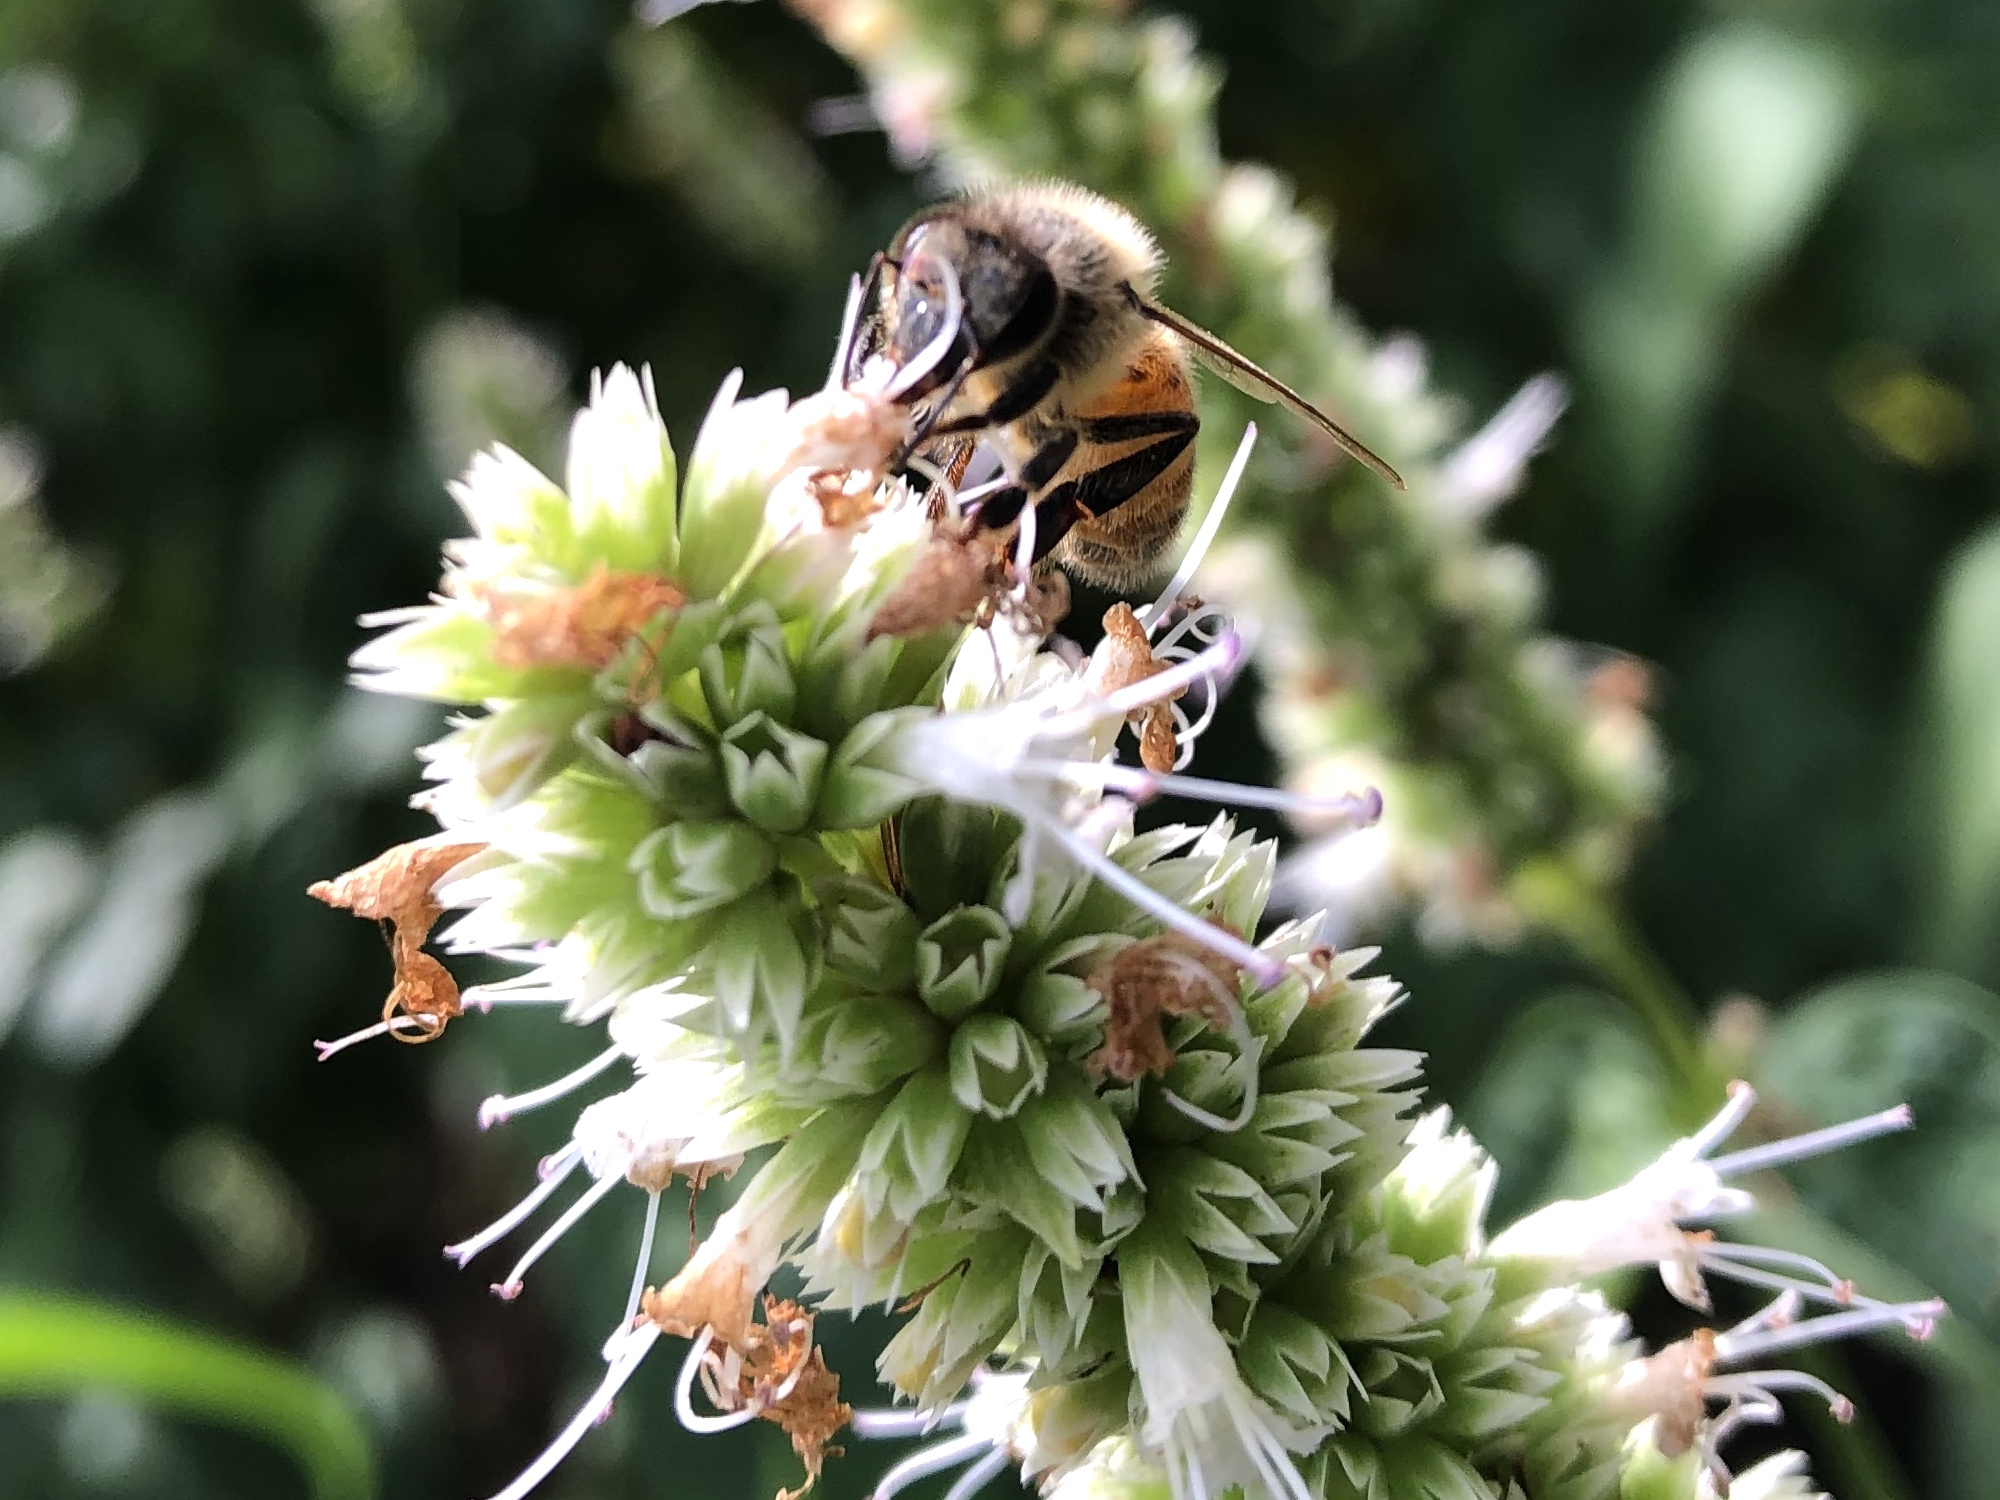 Bee on Giant Hyssop on August 22, 2020.